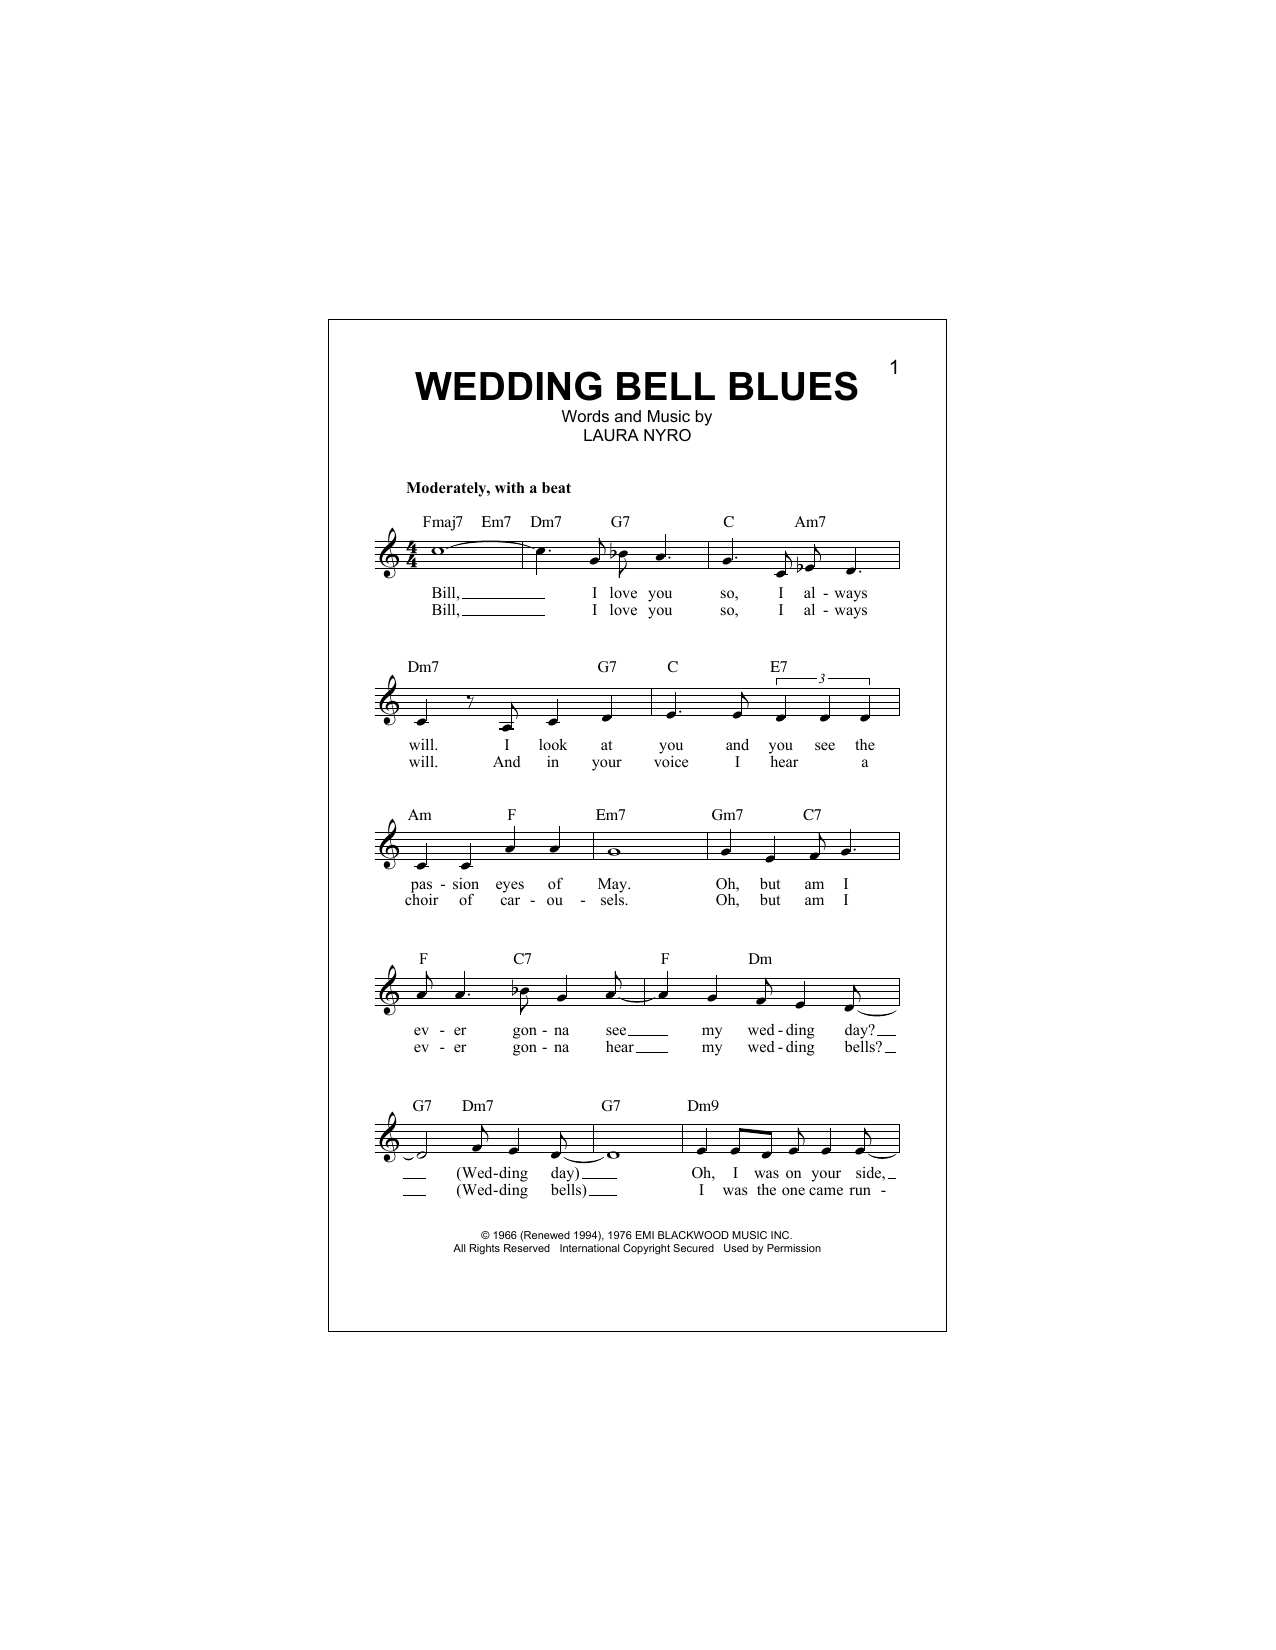 Morrissey – Wedding Bell Blues Lyrics | Genius Lyrics